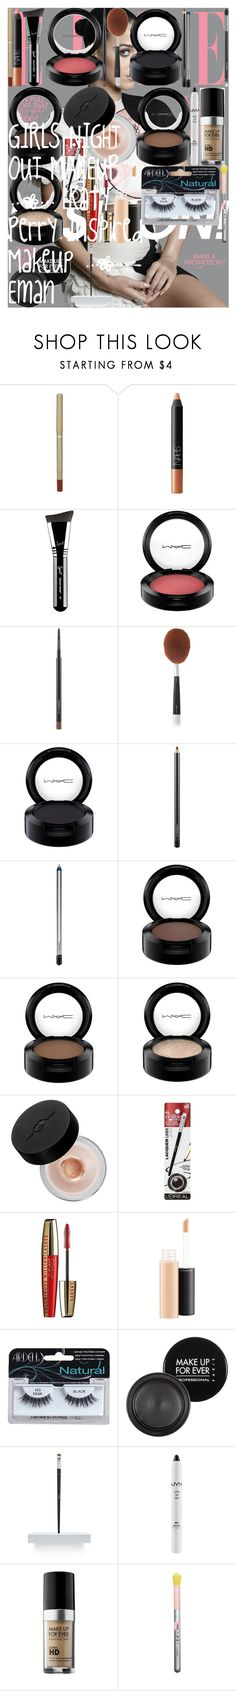 """""""GIRLS NIGHT OUT MAKEUP   Katy Perry Inspired Makeup   Eman"""" by oroartye-1 on Polyvore featuring beauty, L'Oréal Paris, NARS Cosmetics, Sigma, MAC Cosmetics, Artis, MAKE UP FOR EVER, Christian Dior, NYX and Chanel"""